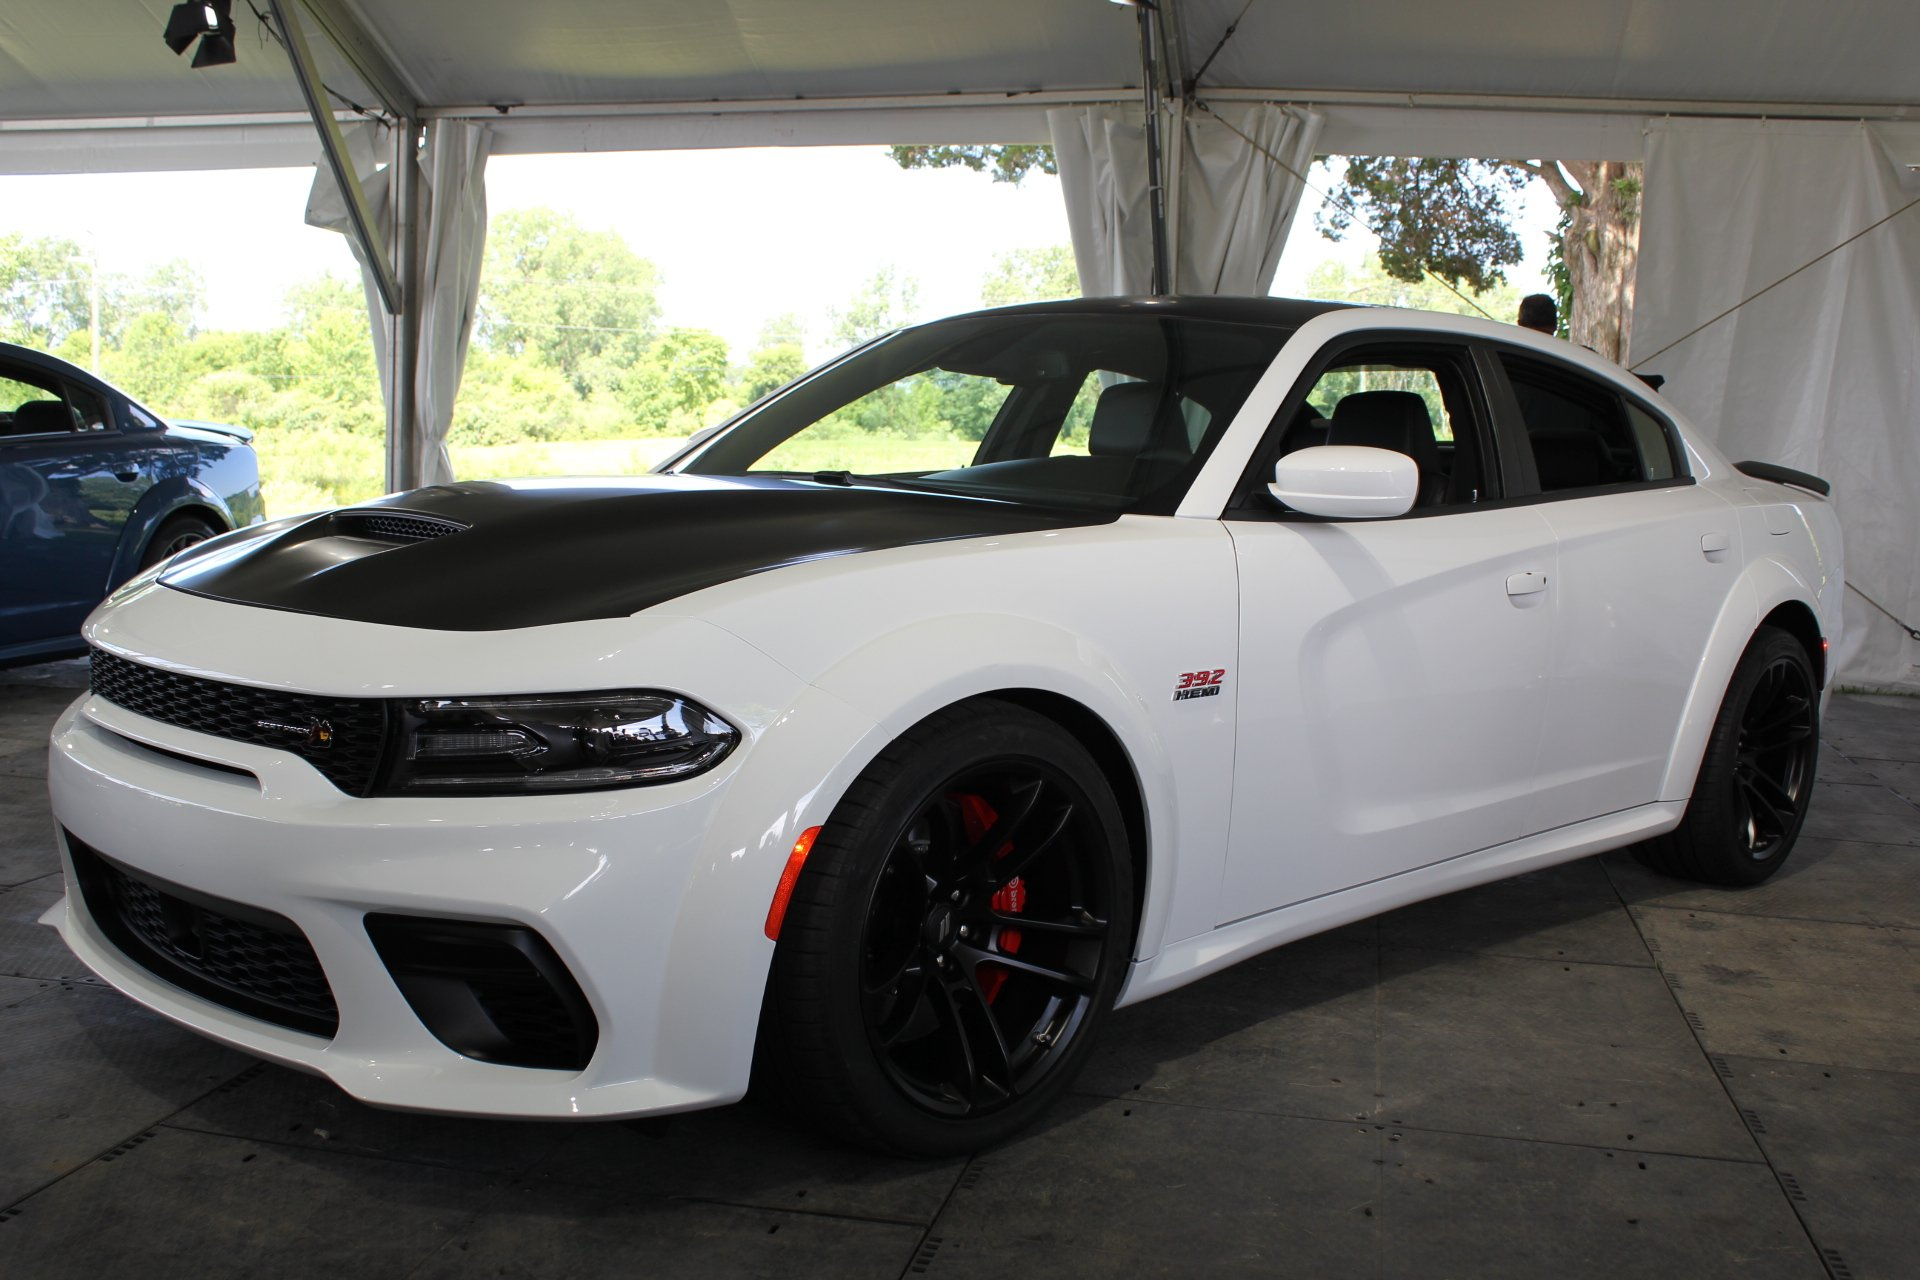 2020 Dodge Charger Scat Pack Widebody Photo Gallery